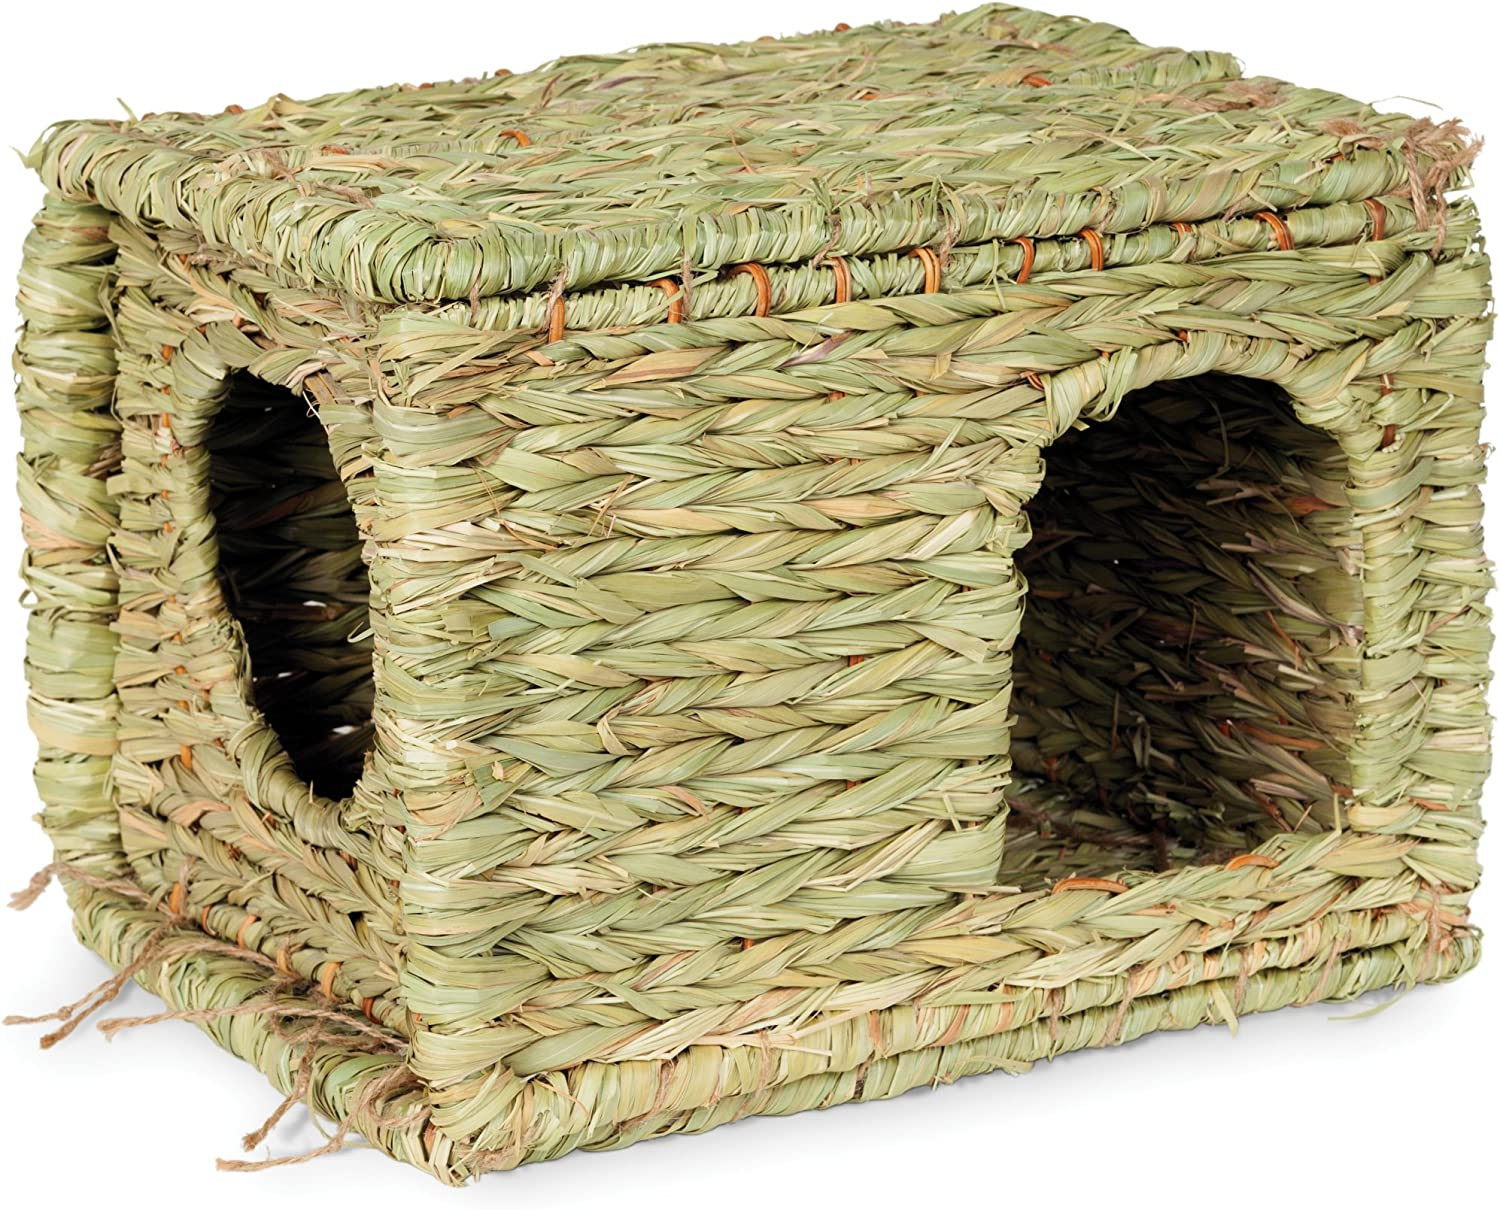 Prevue Hendryx 1100 Nature's High material Toy Grass Max 62% OFF Hideaway Couch